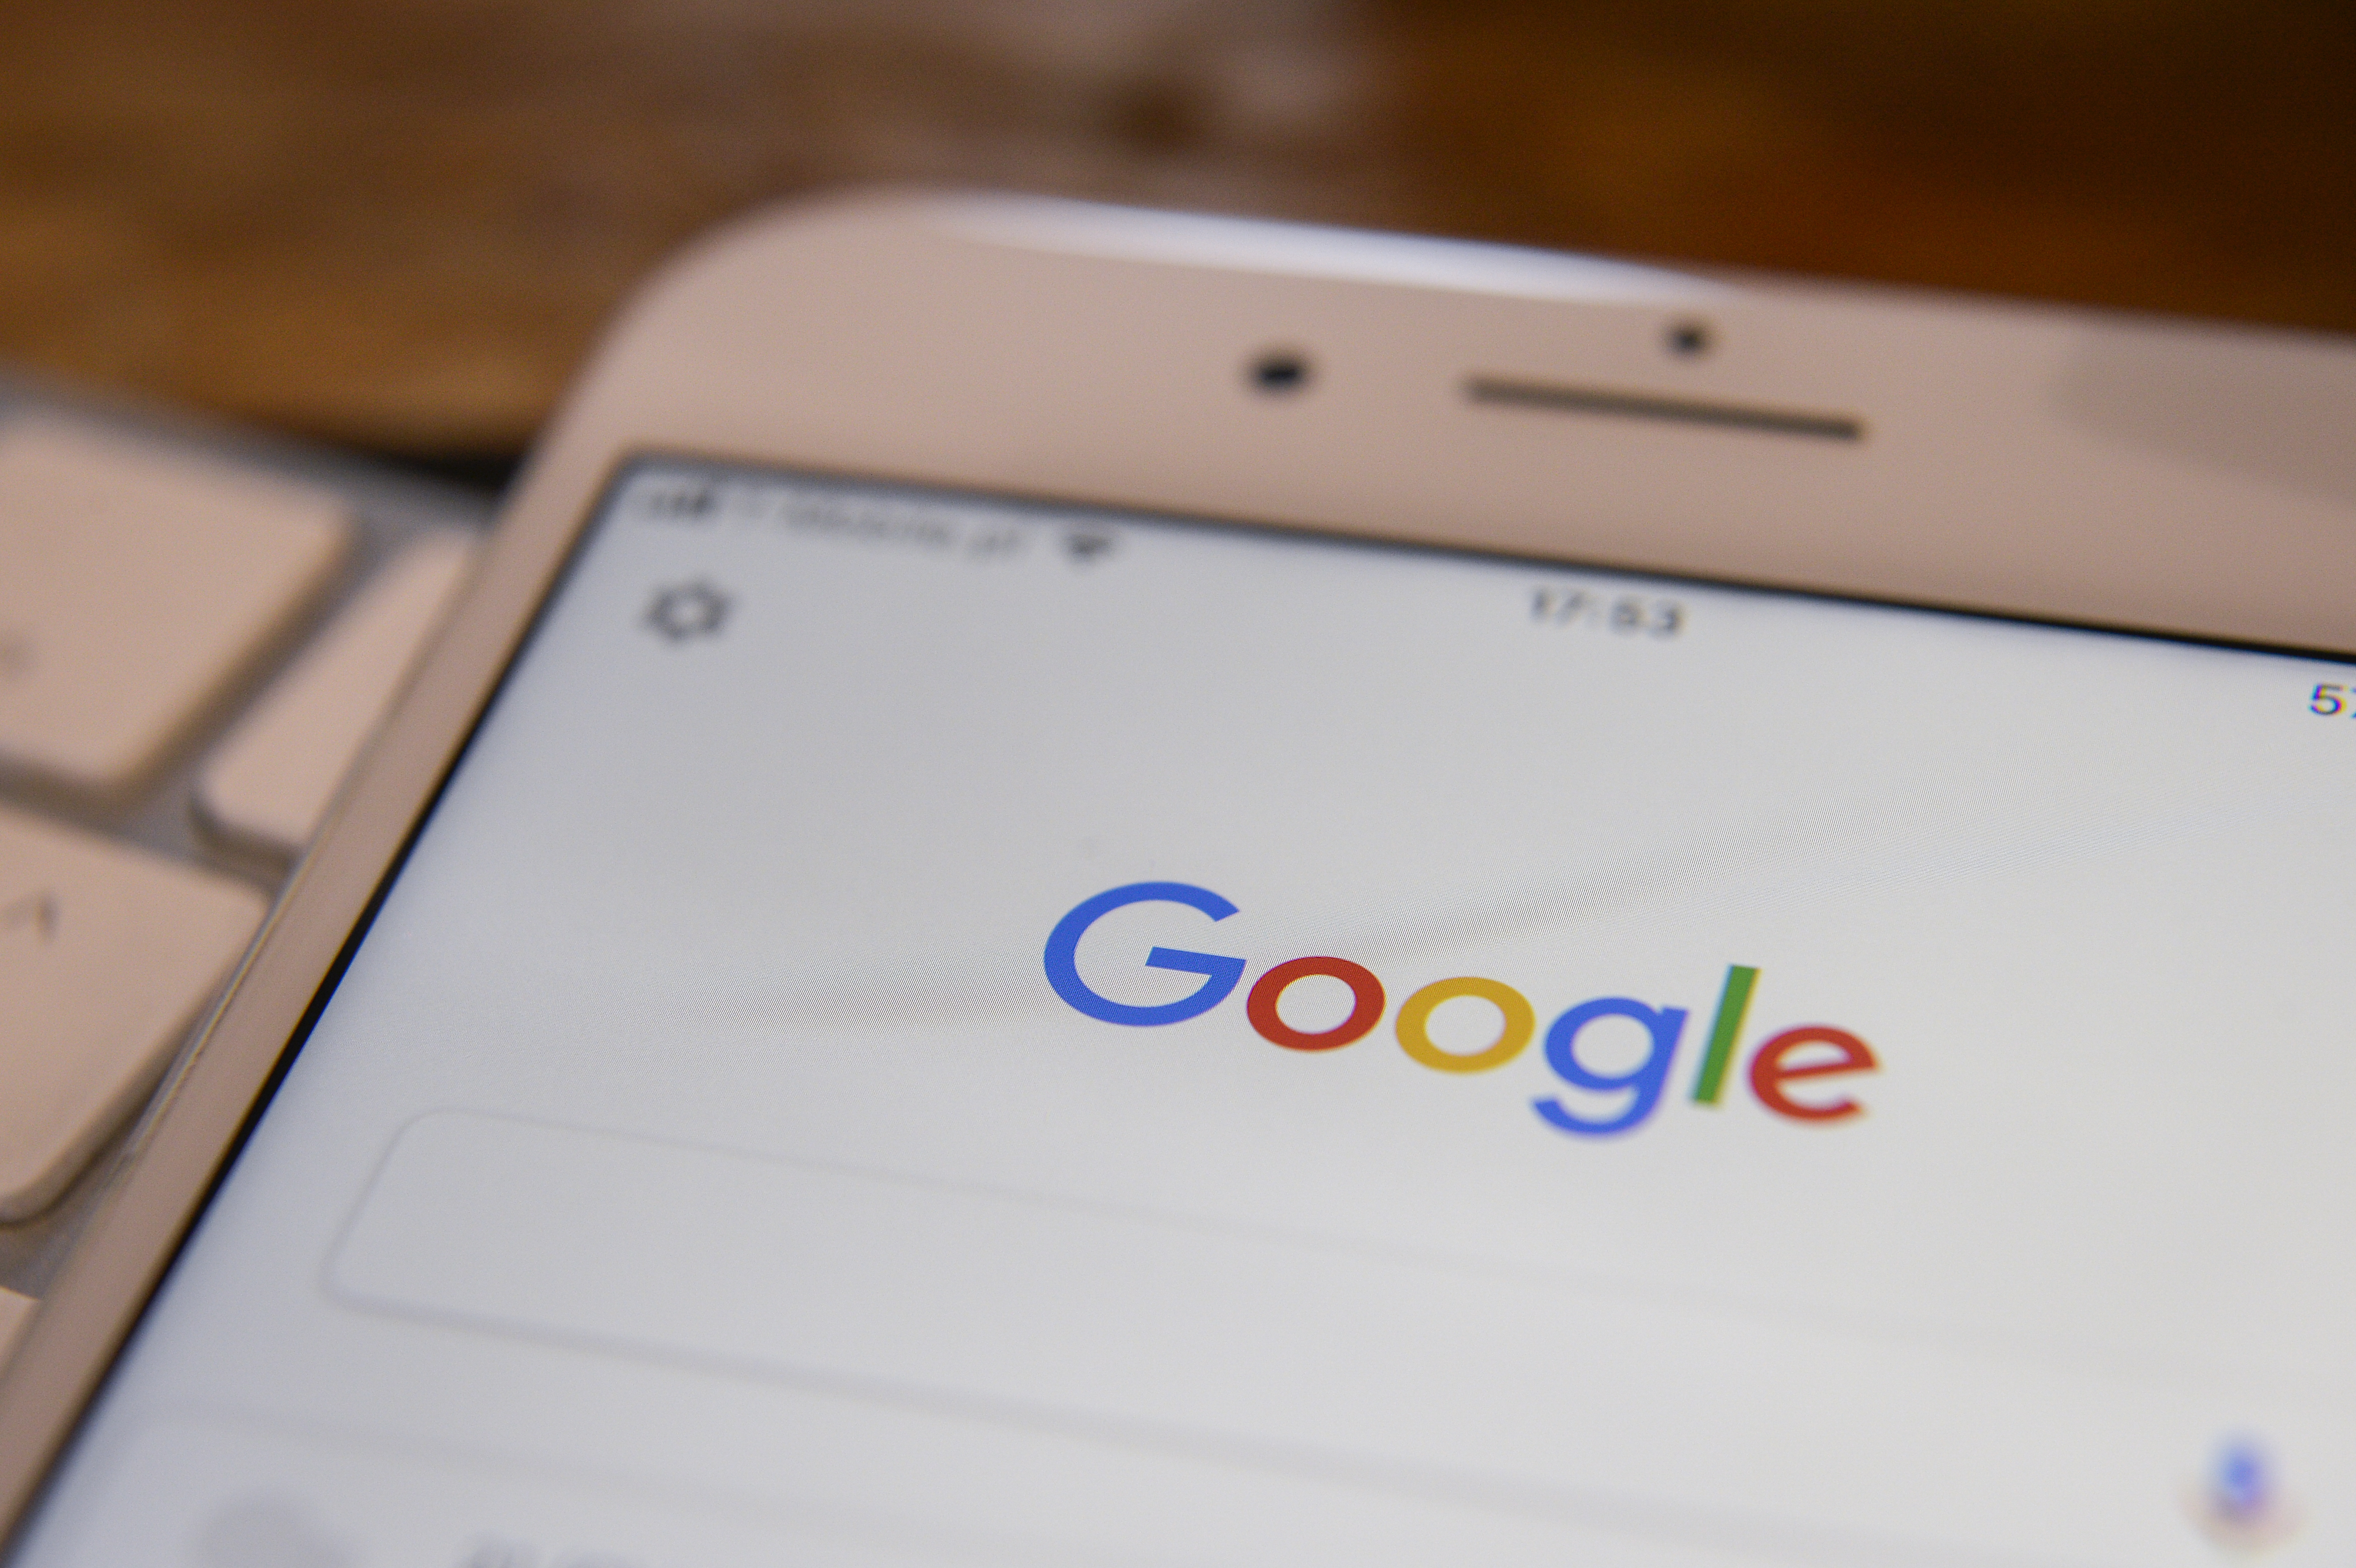 Google is making it easier to learn about Search results